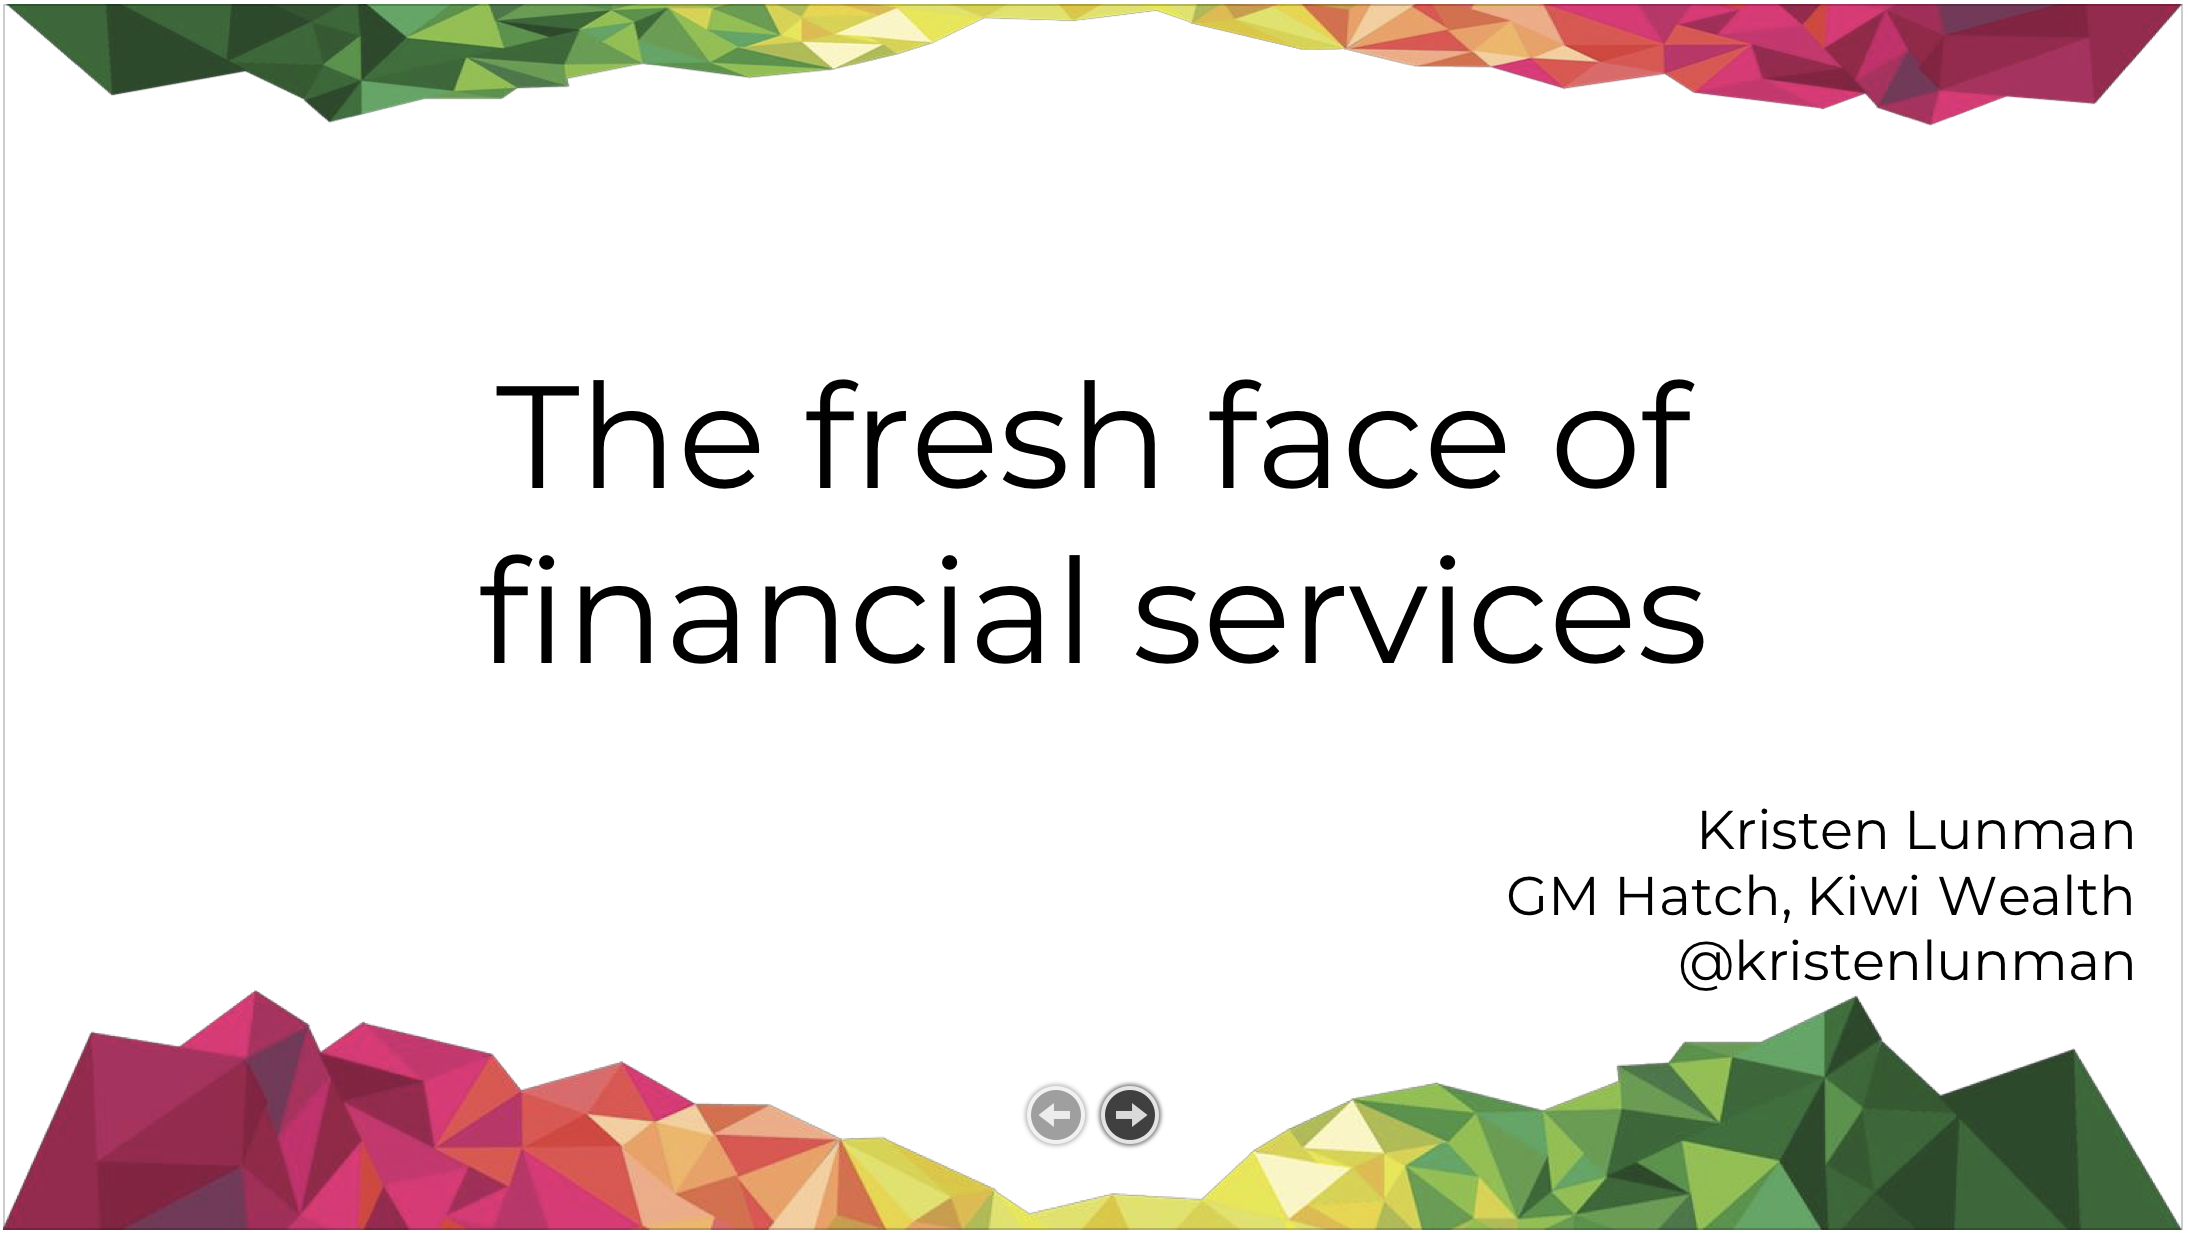 The fresh face of financial services